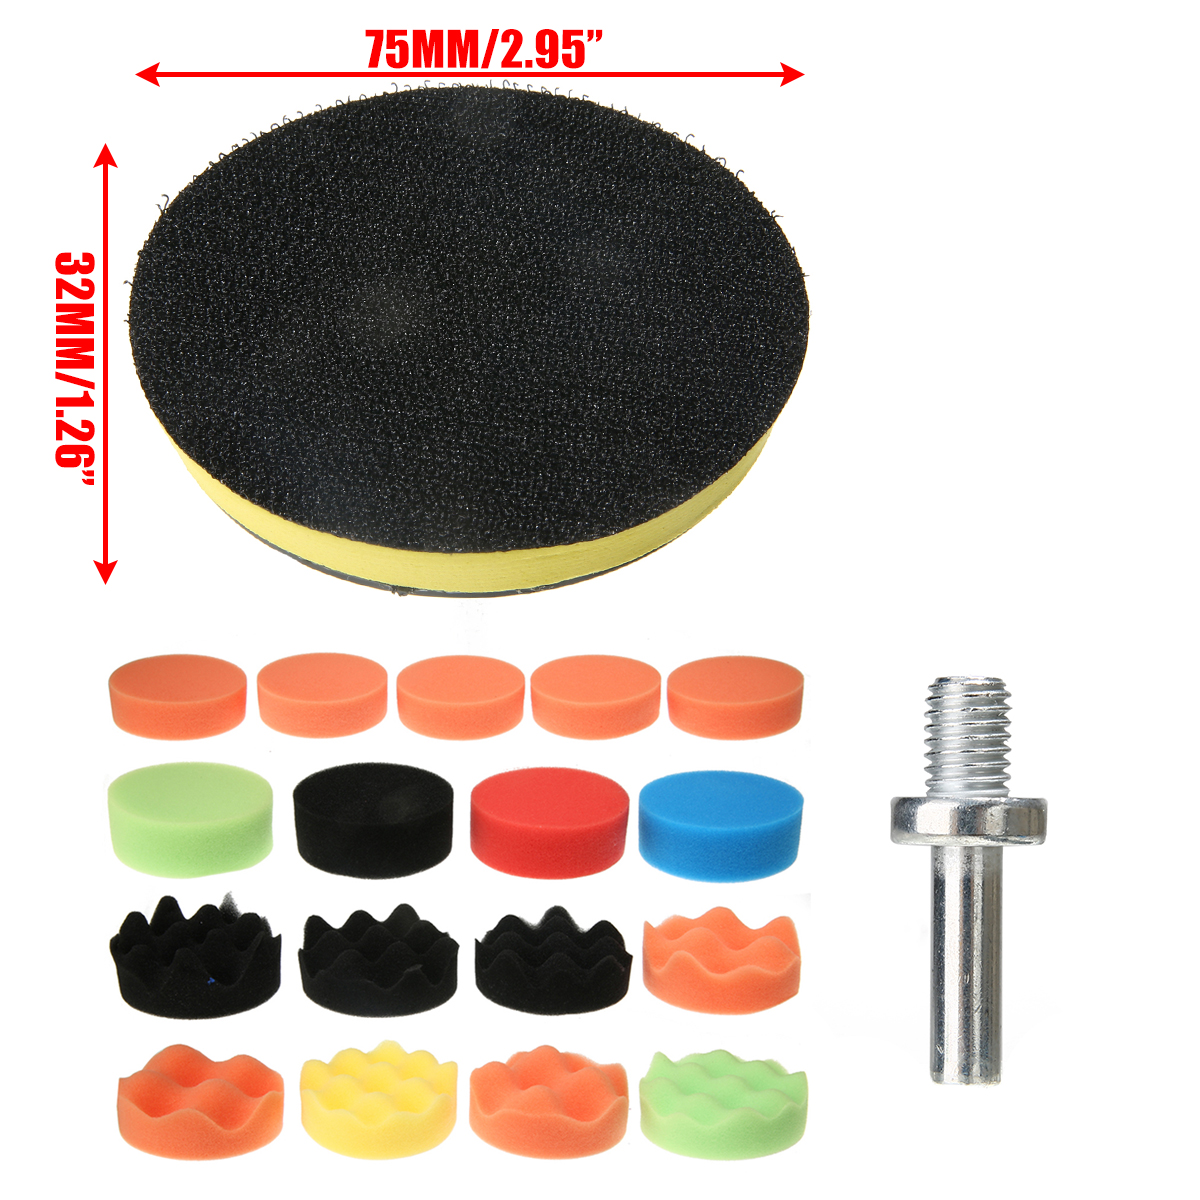 18Pcs Set Car Polishing Pad 3inch Sponge Buffing Waxing For Car Furniture Paint Polish Buffer Drill Wheel Abrasive Tools